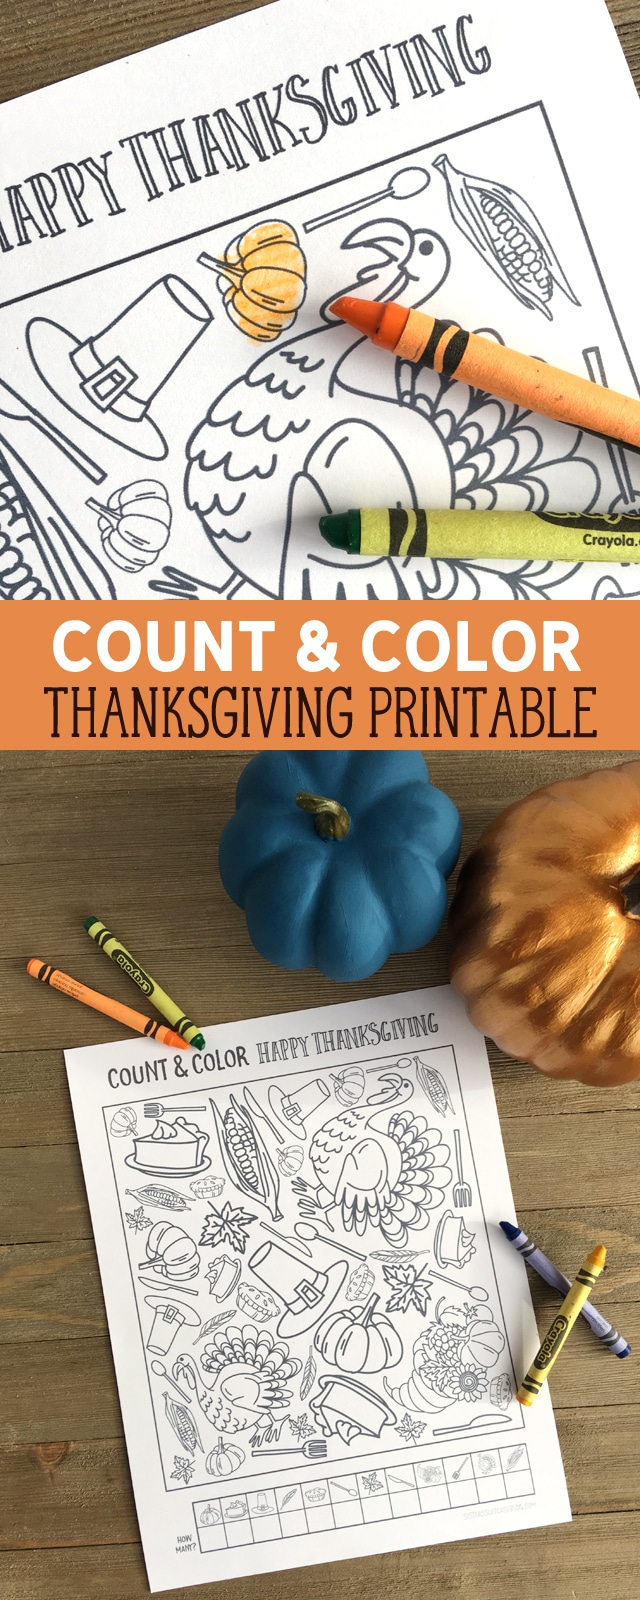 count-and-color-thanksgiving-printable